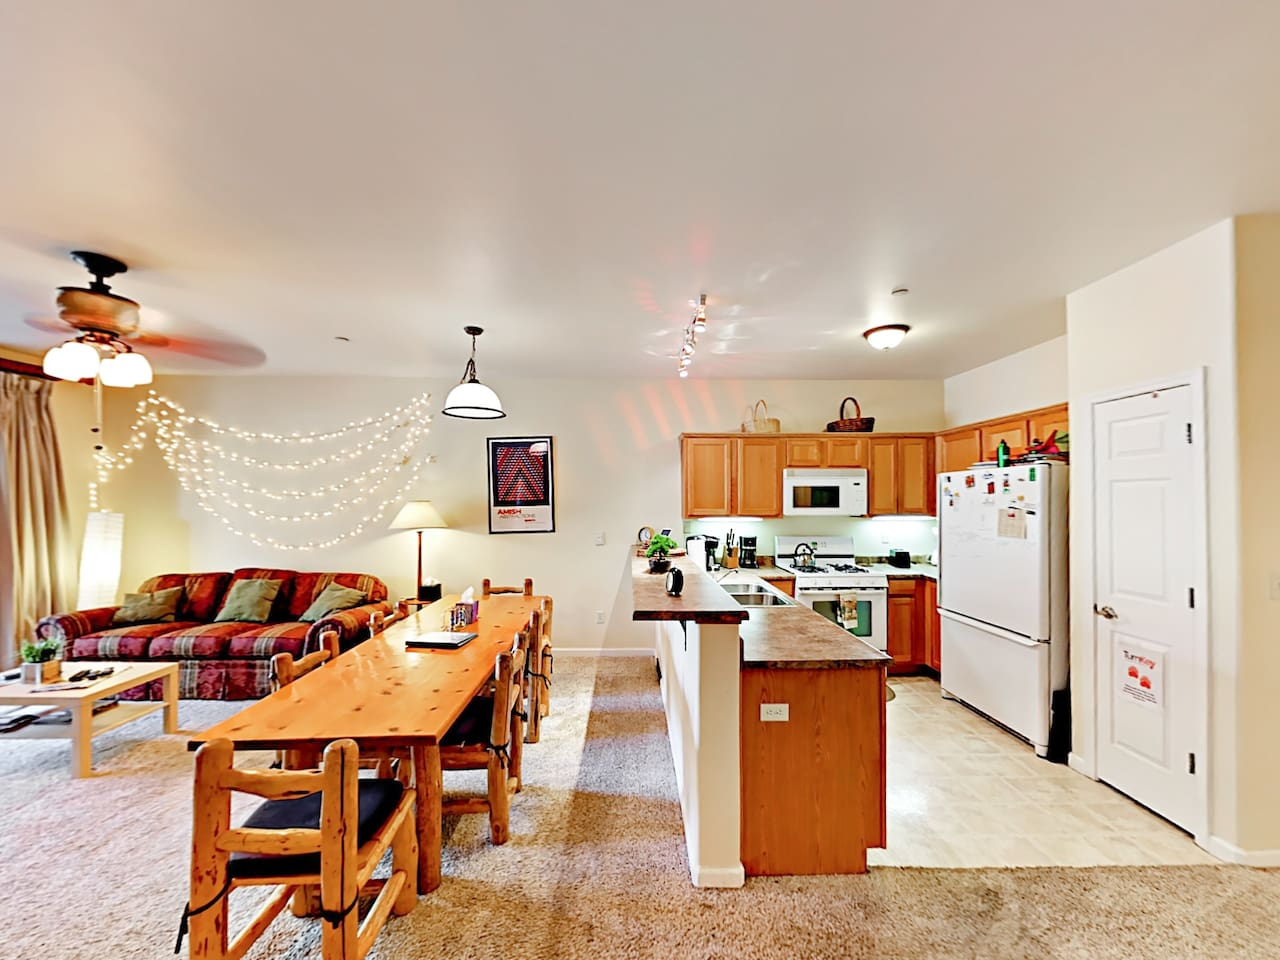 Welcome to Truckee! This townhouse is professionally managed by TurnKey Vacation Rentals.